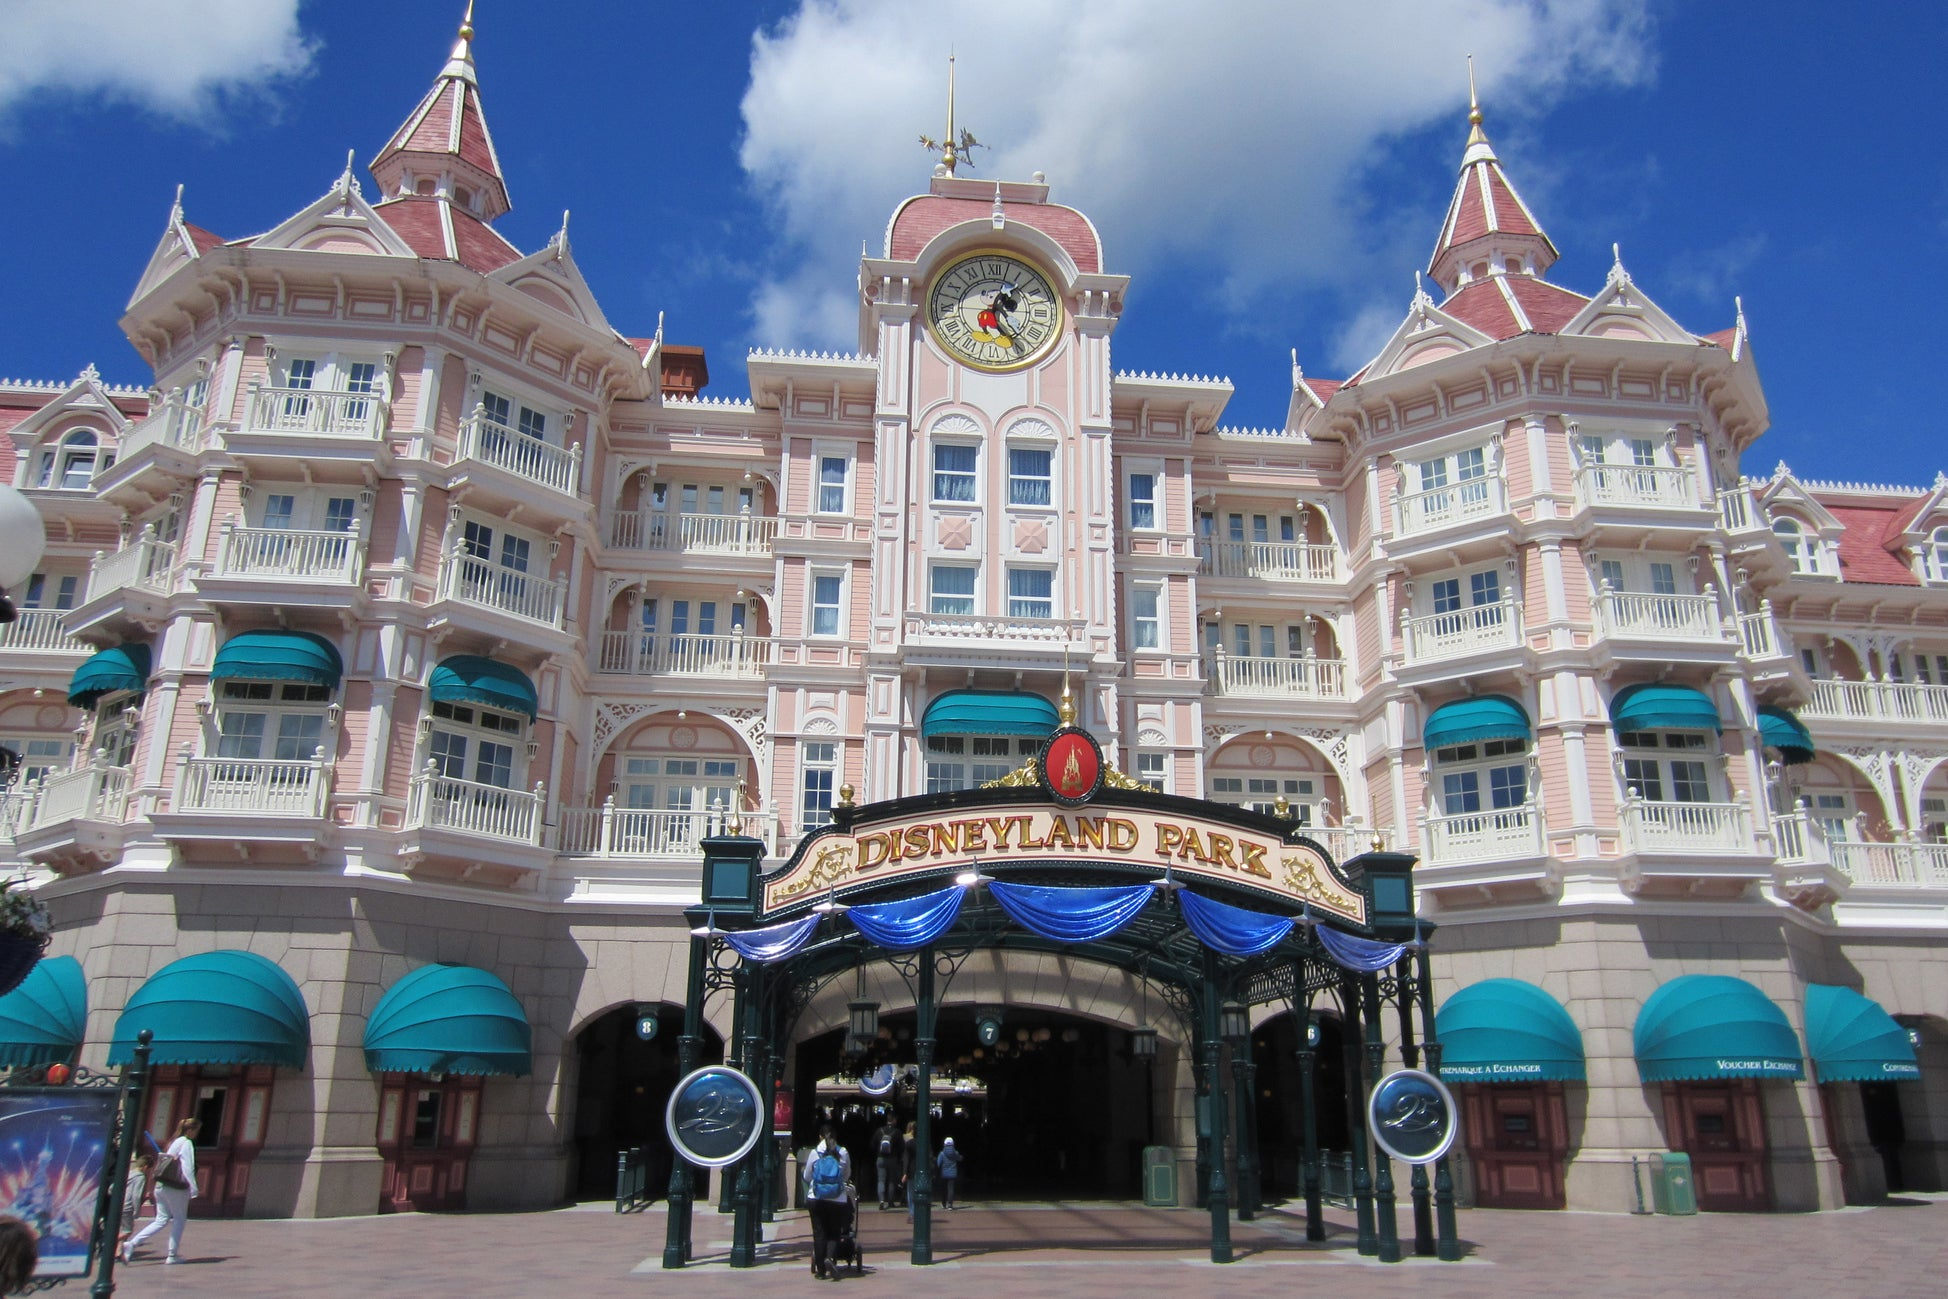 Disneyland Paris Reopens Its Gates After Four Month Closure The Independent Independent